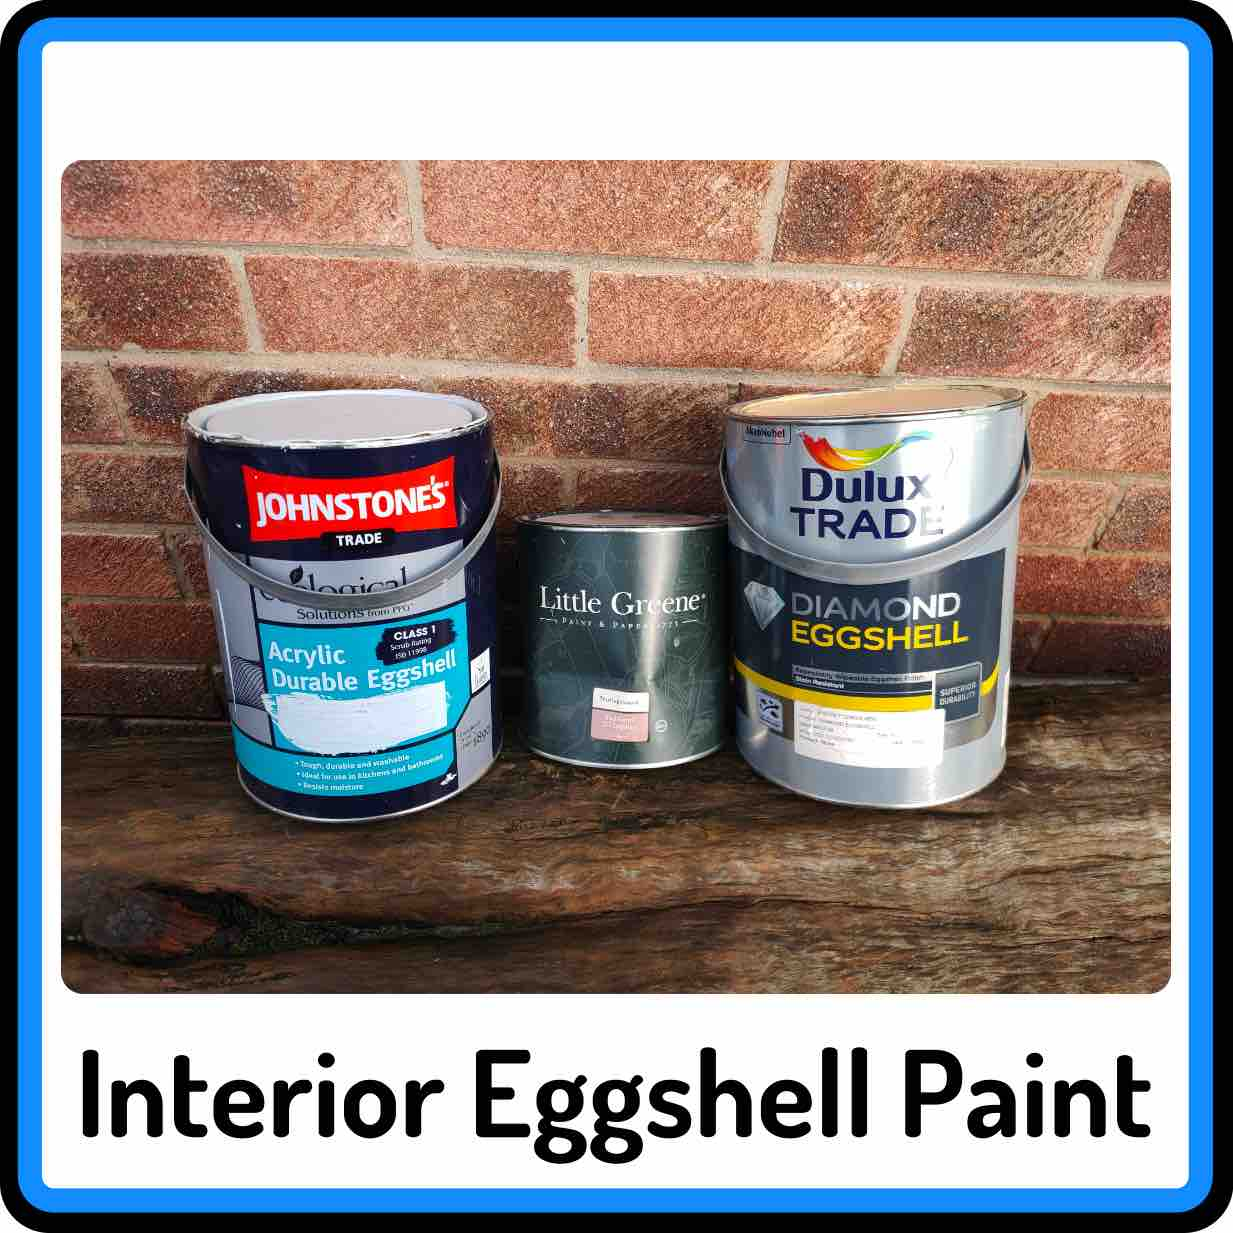 View our selection of Interior Eggshell Paints